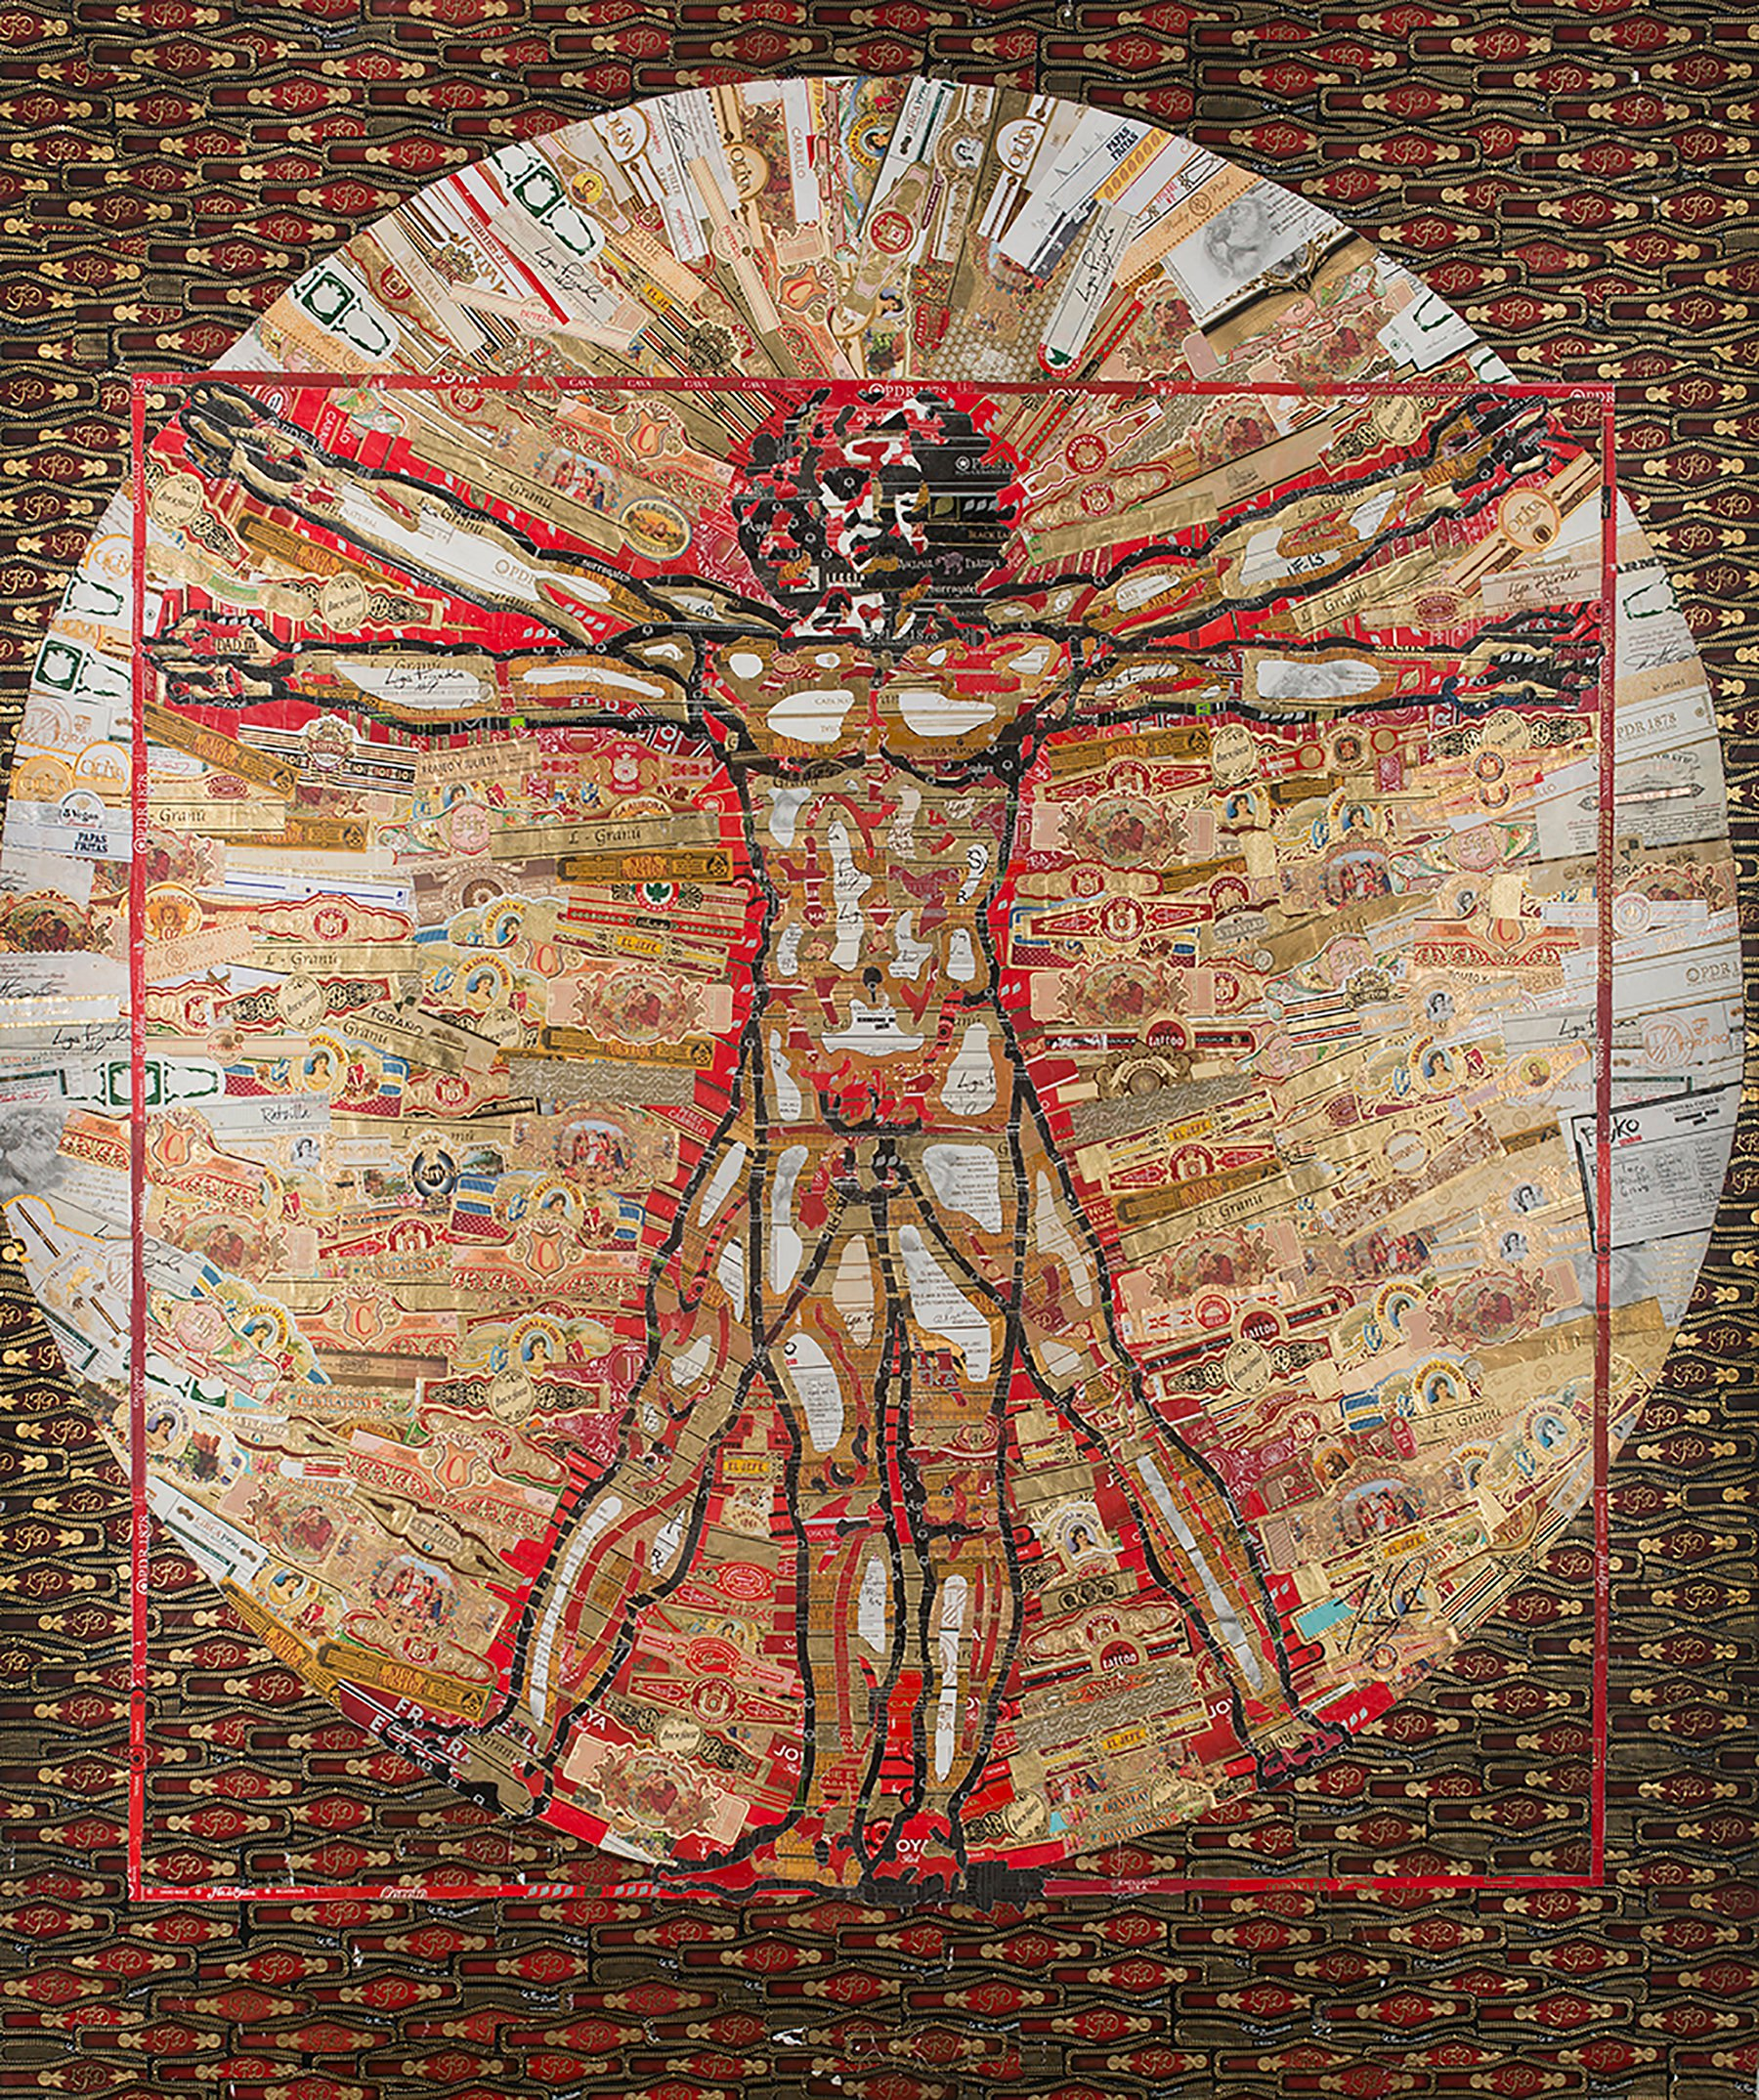 cigar_ring_pictures_-vitruvian_1.jpg